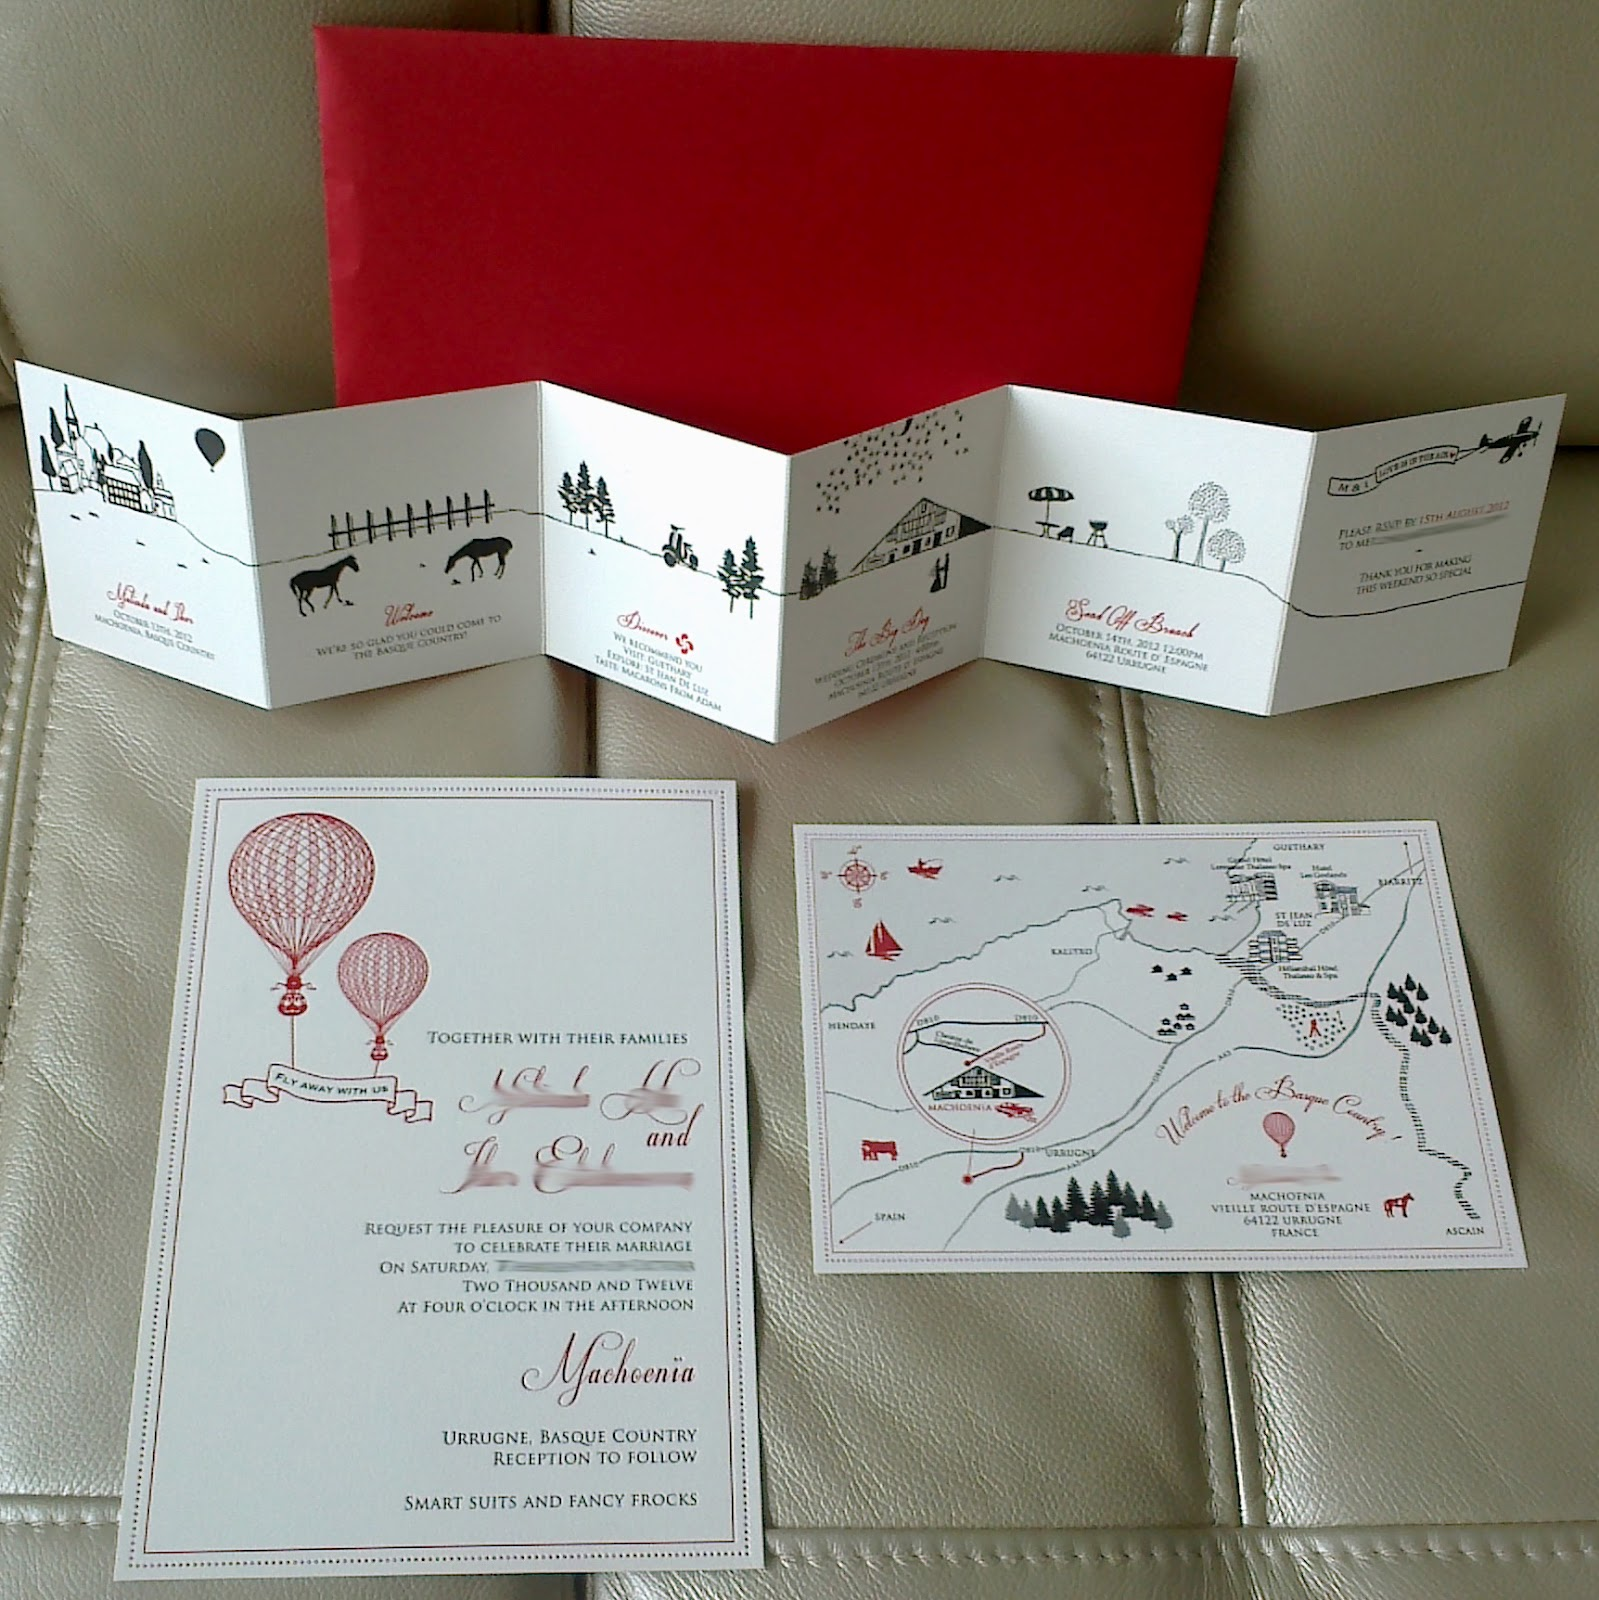 Kalo Make Art Bespoke Wedding Invitation Designs: July 2012